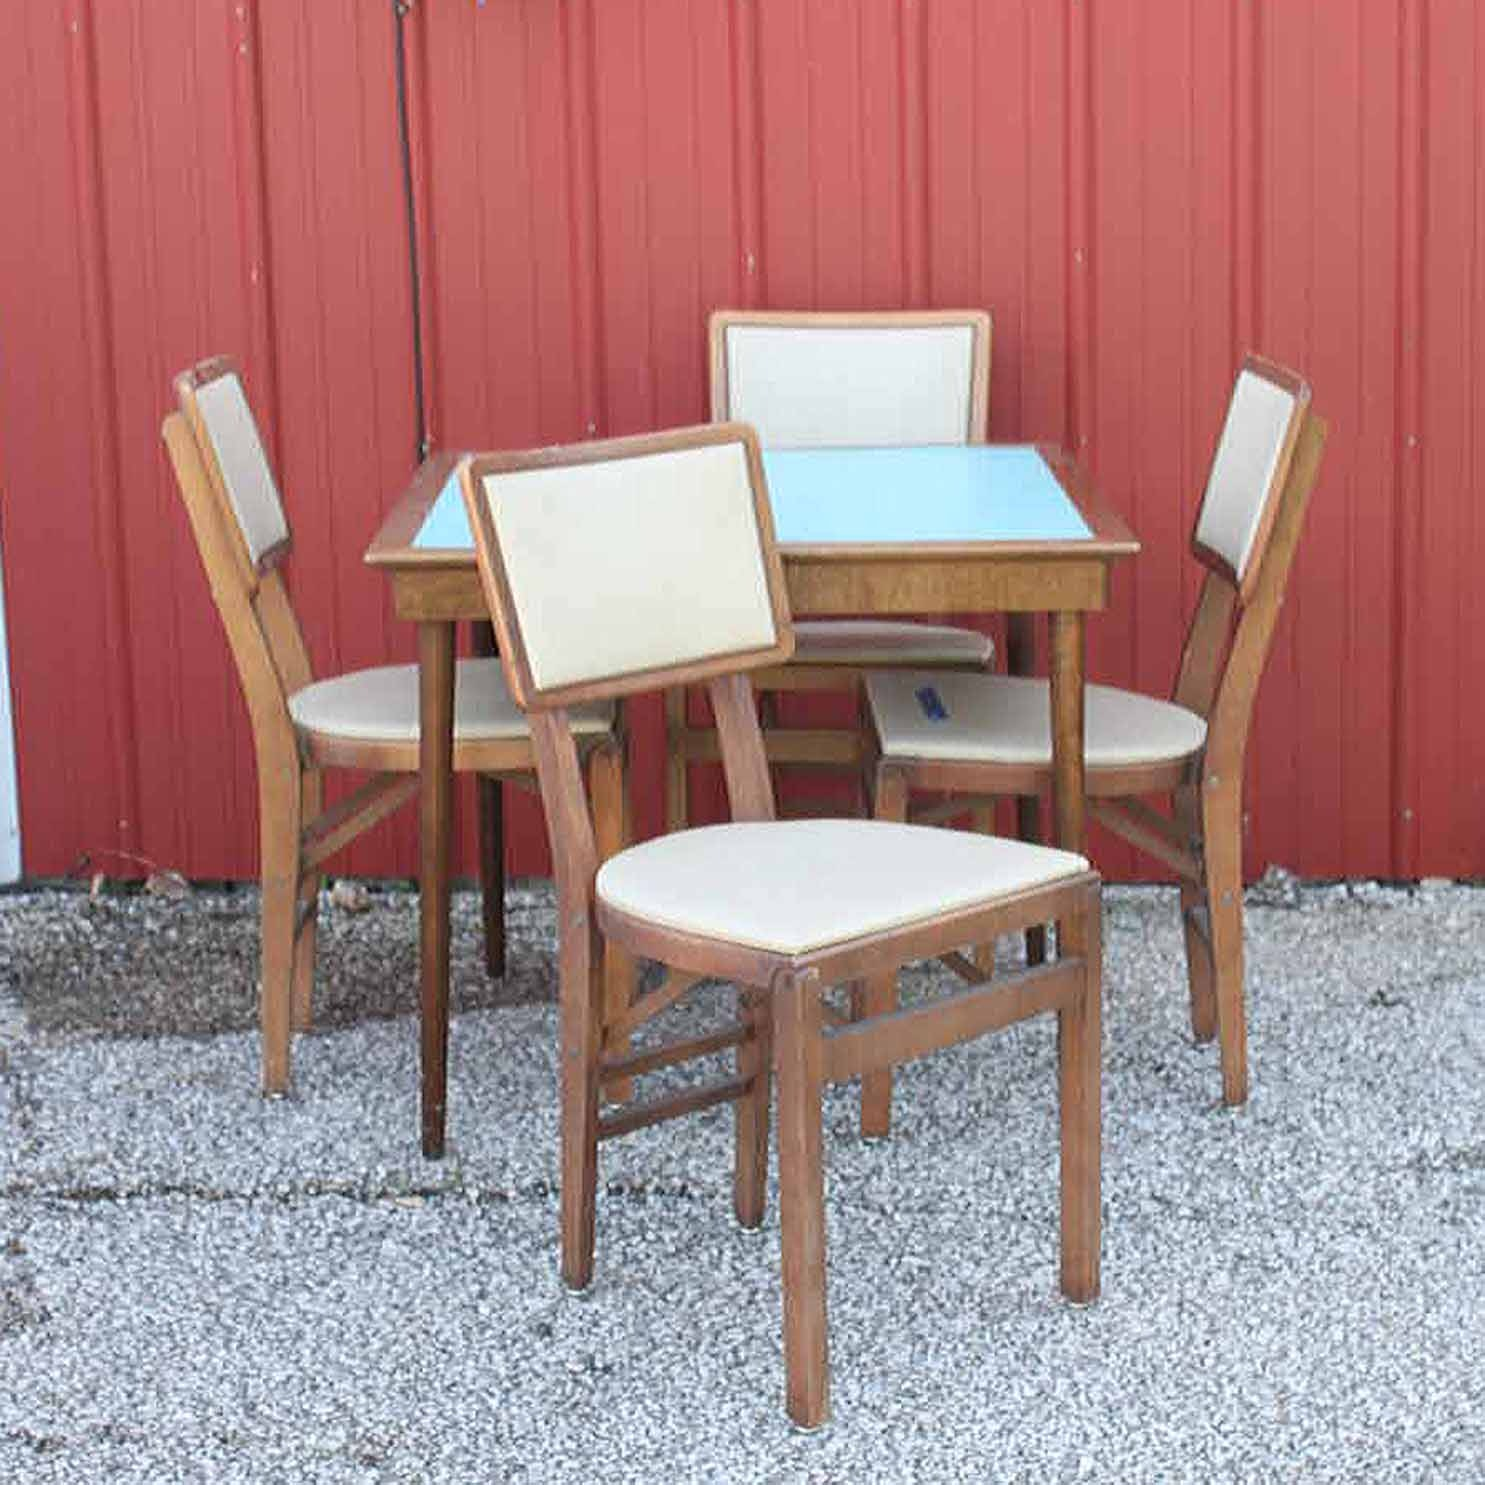 Vintage Folding Table and Chairs